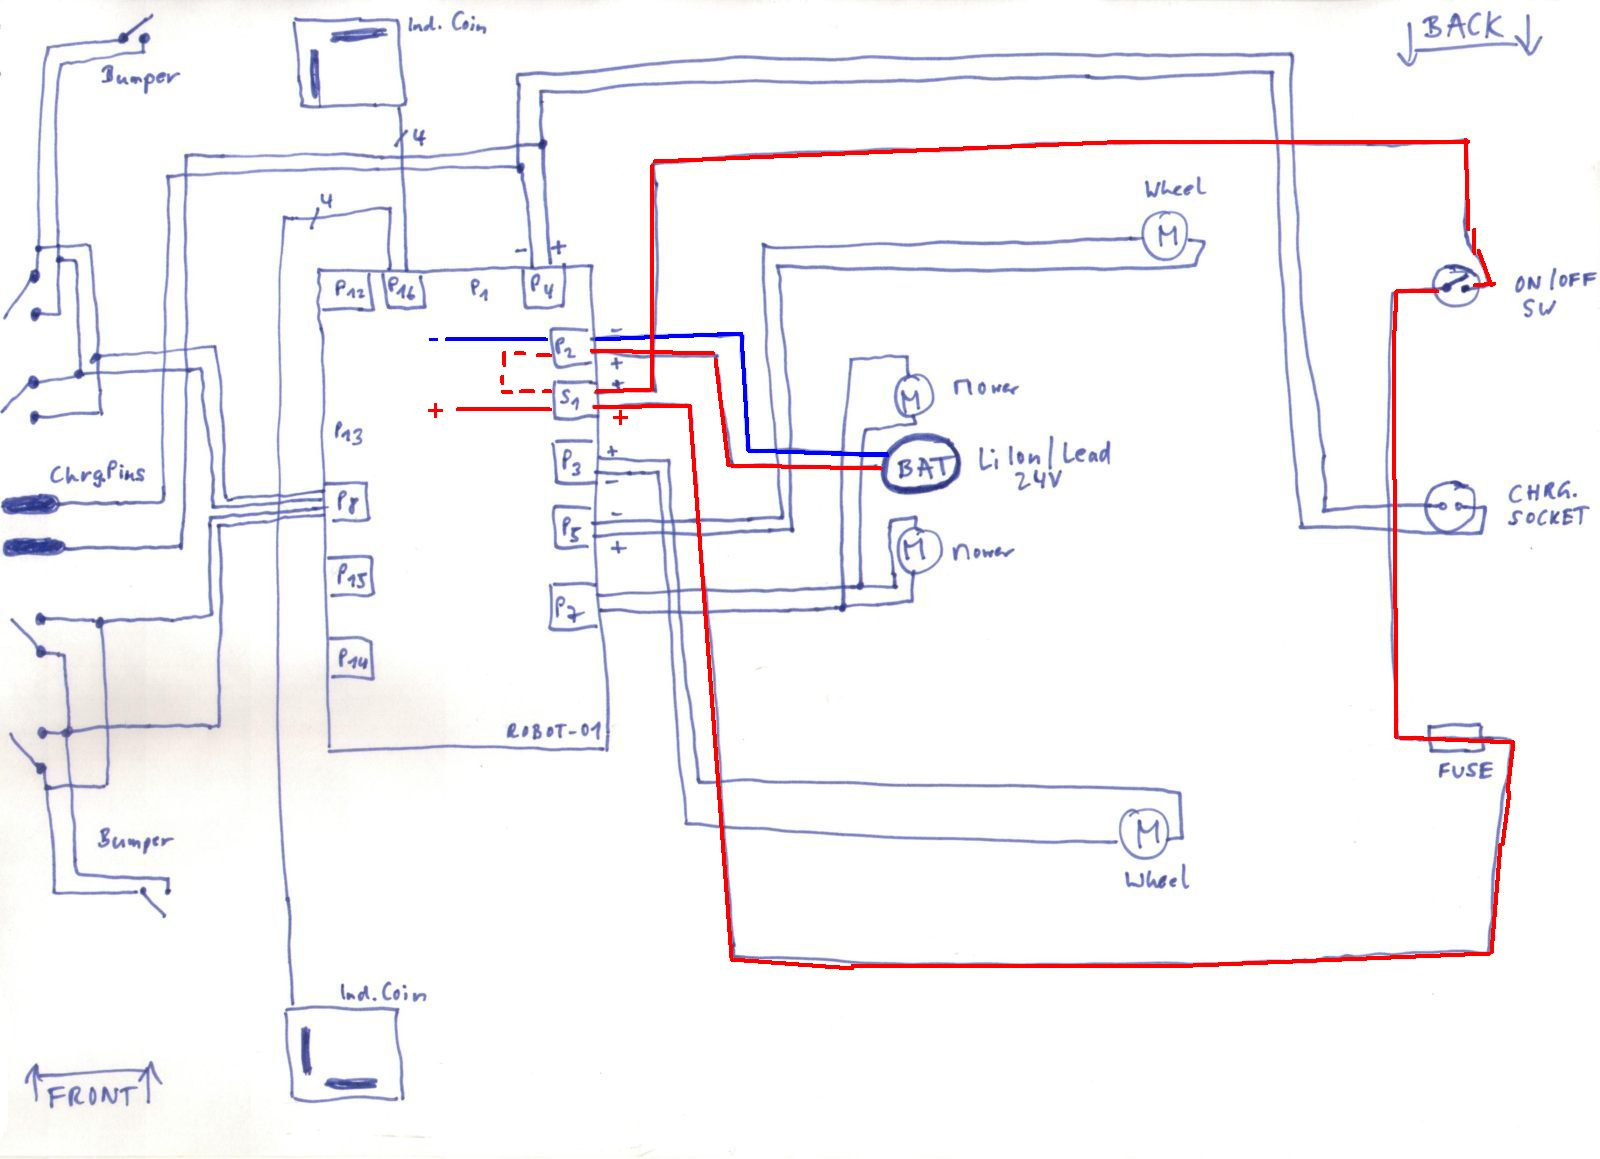 1977 Jeep Cj5 Wiring Harness 28 Diagram Images 1979 Wiringresize16002c1159 Diagrams 11002459 Electrical